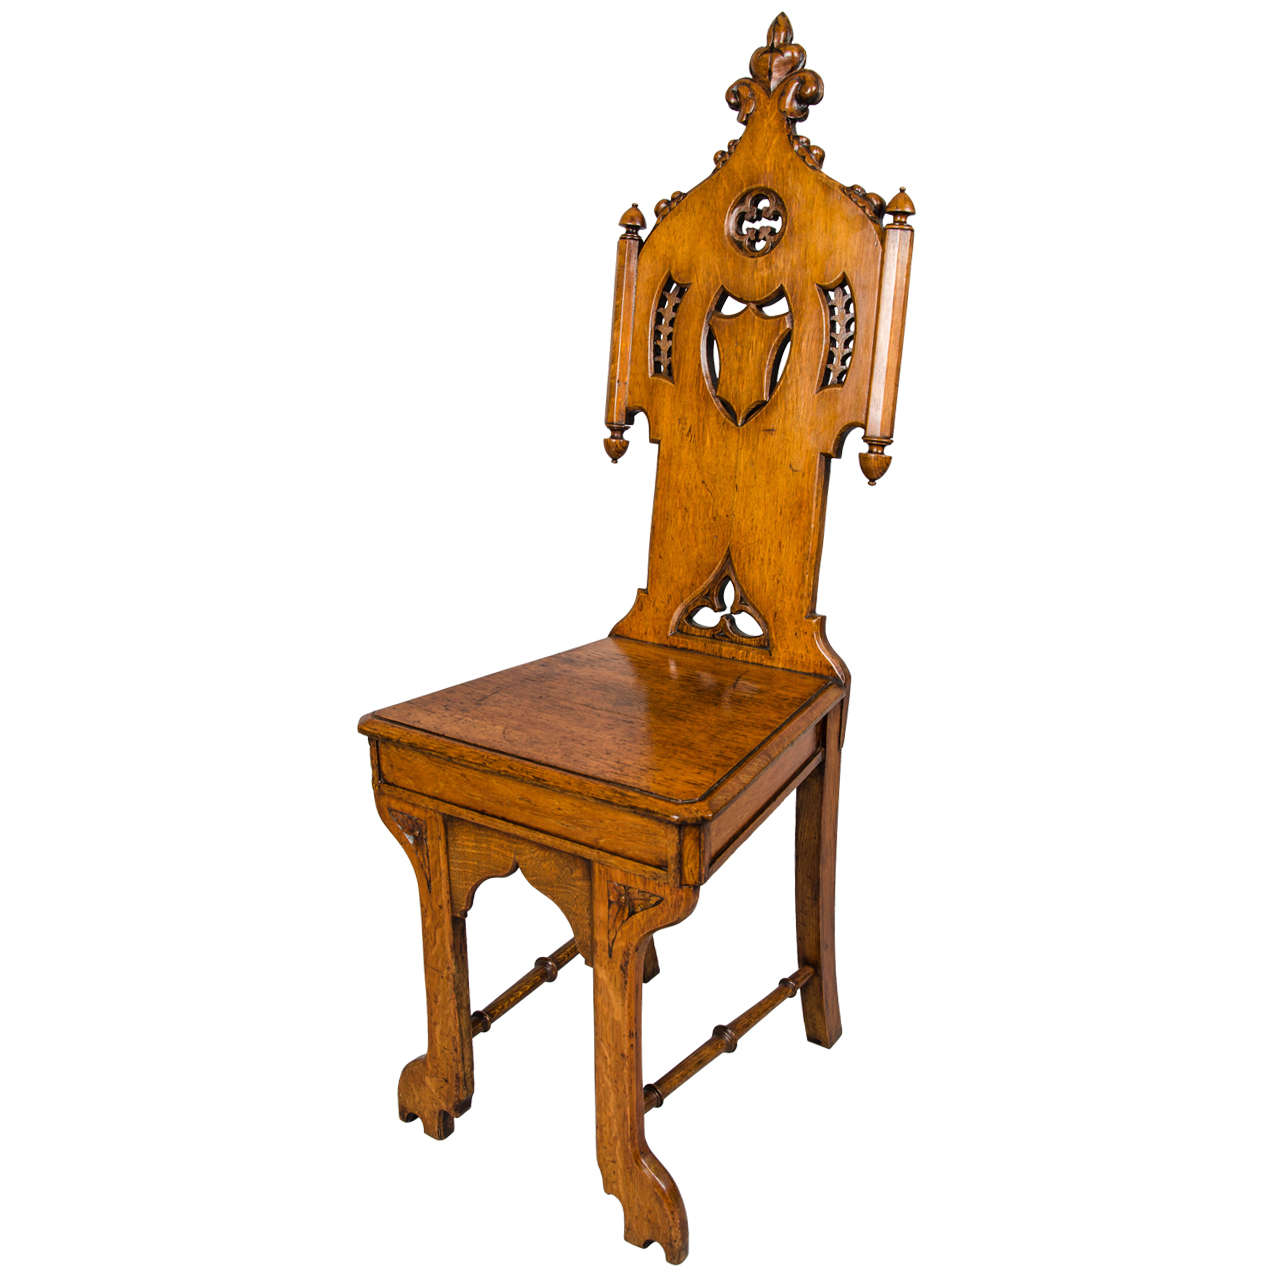 Victorian gothic hall chair at 1stdibs for Victorian gothic chair